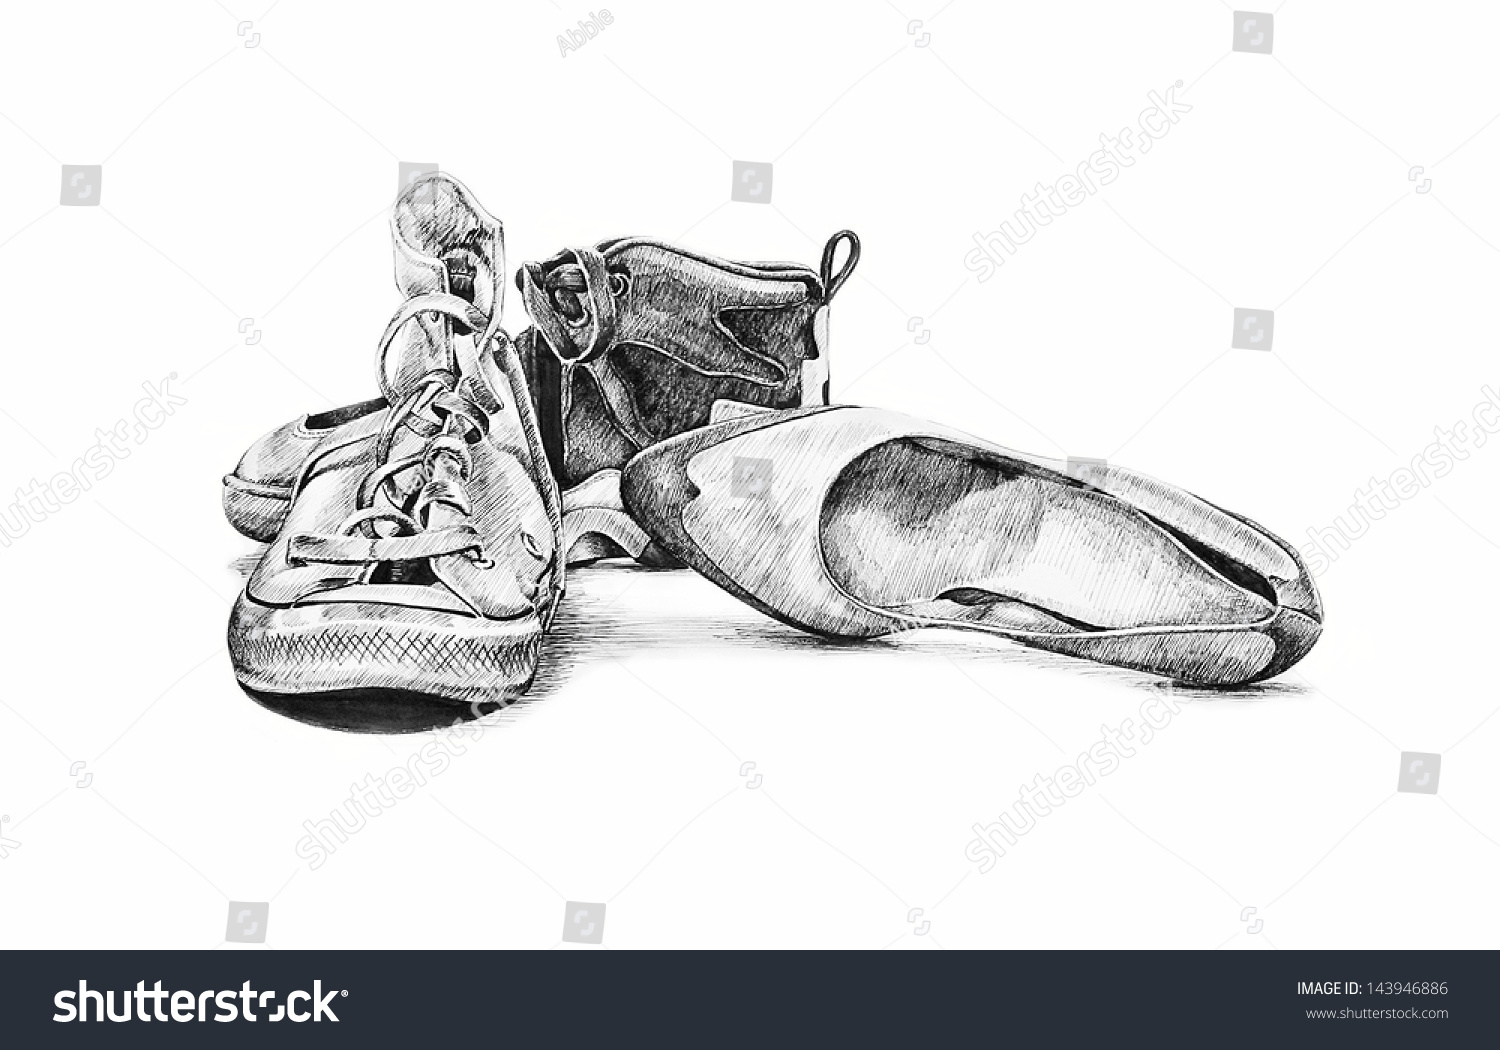 Hand Drawn Sketch Old Worn Shoes Stock Illustration 143946886 ...